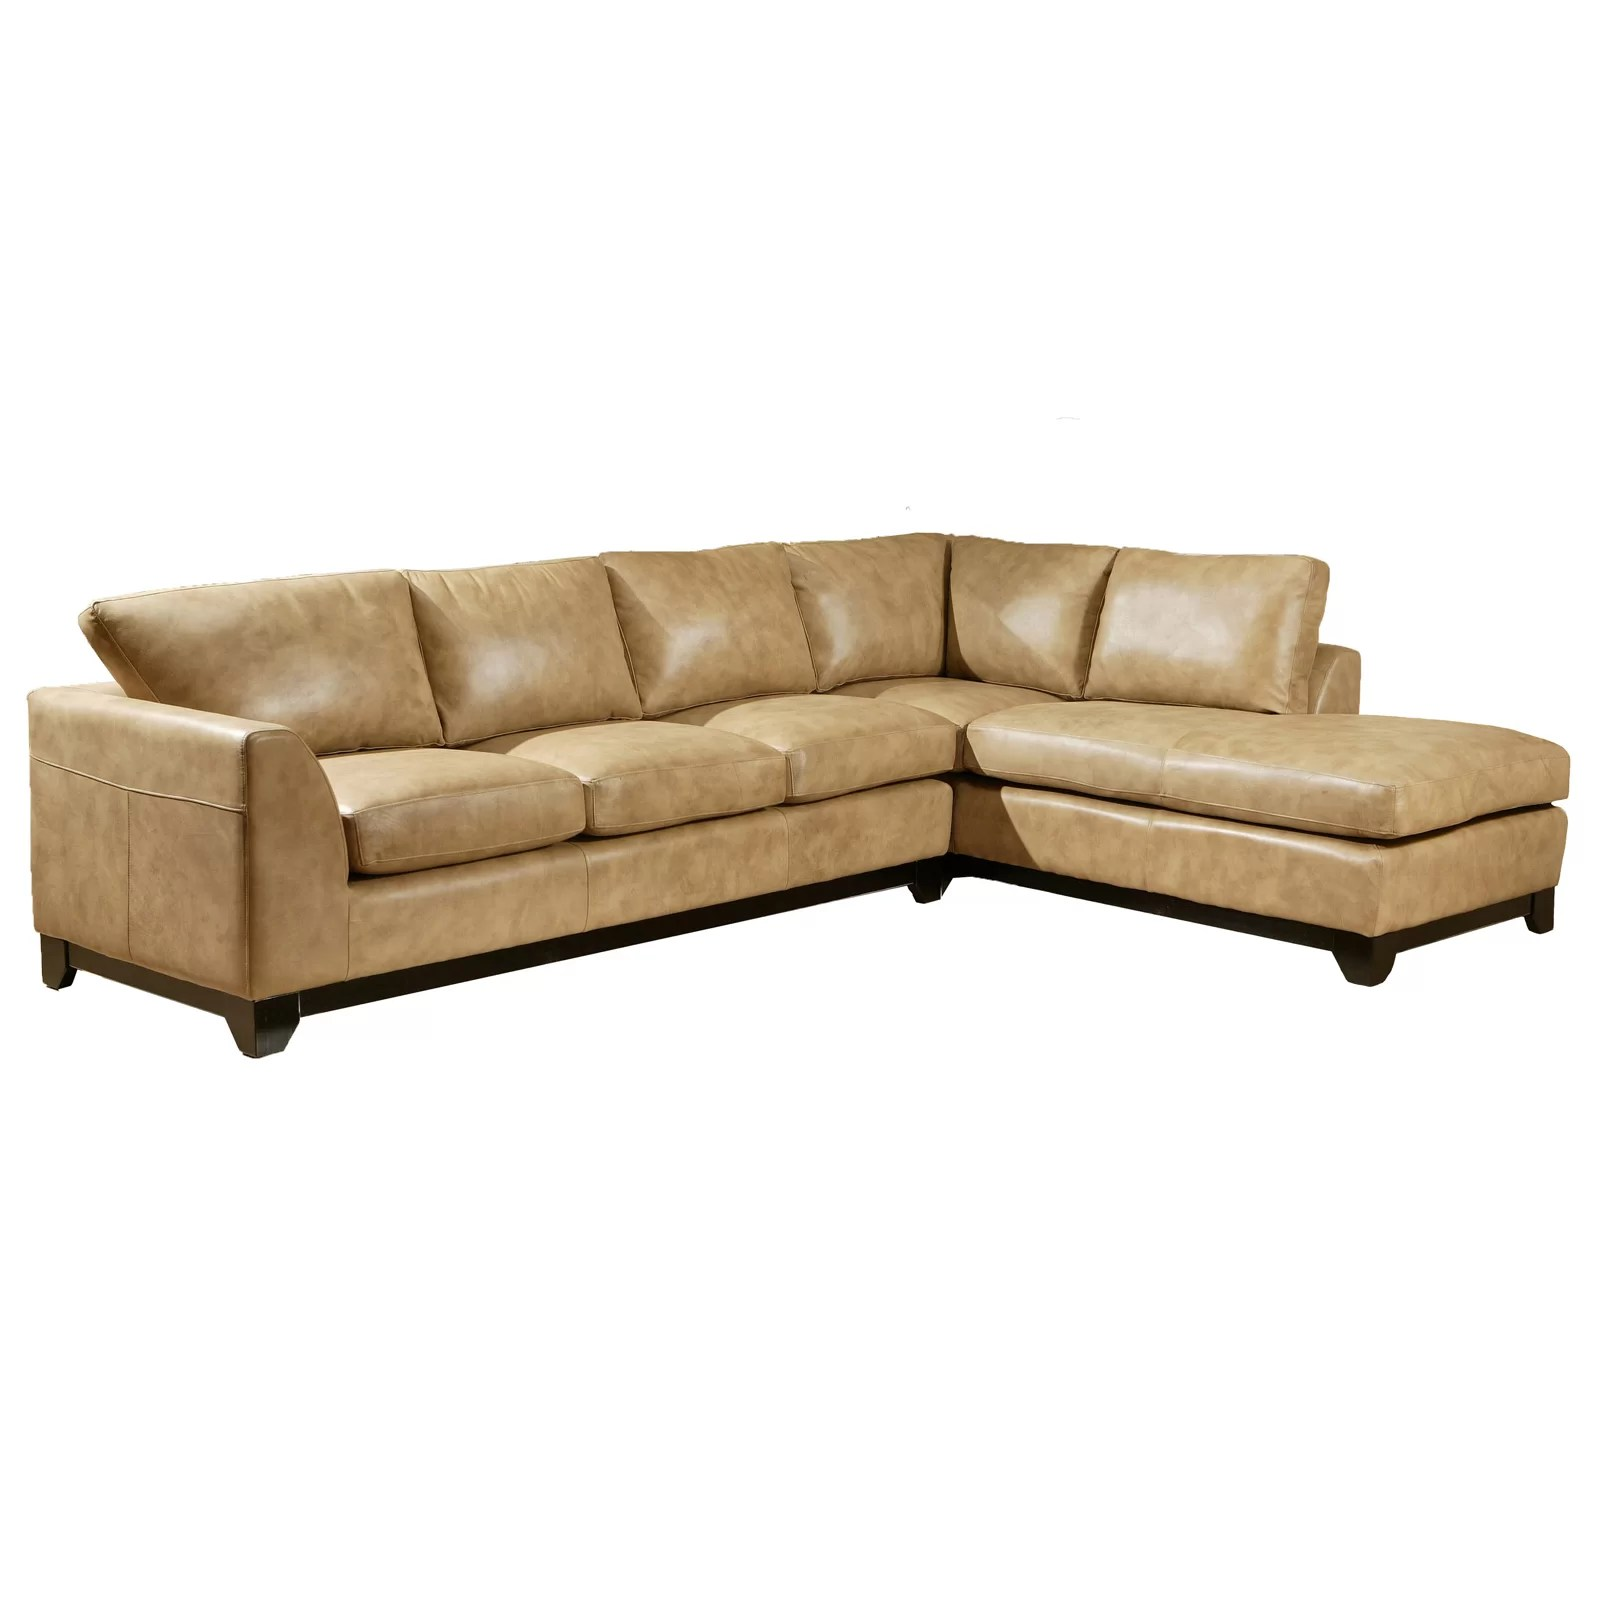 Sleek Leather Couch Omnia Leather City Sleek Sectional Wayfair